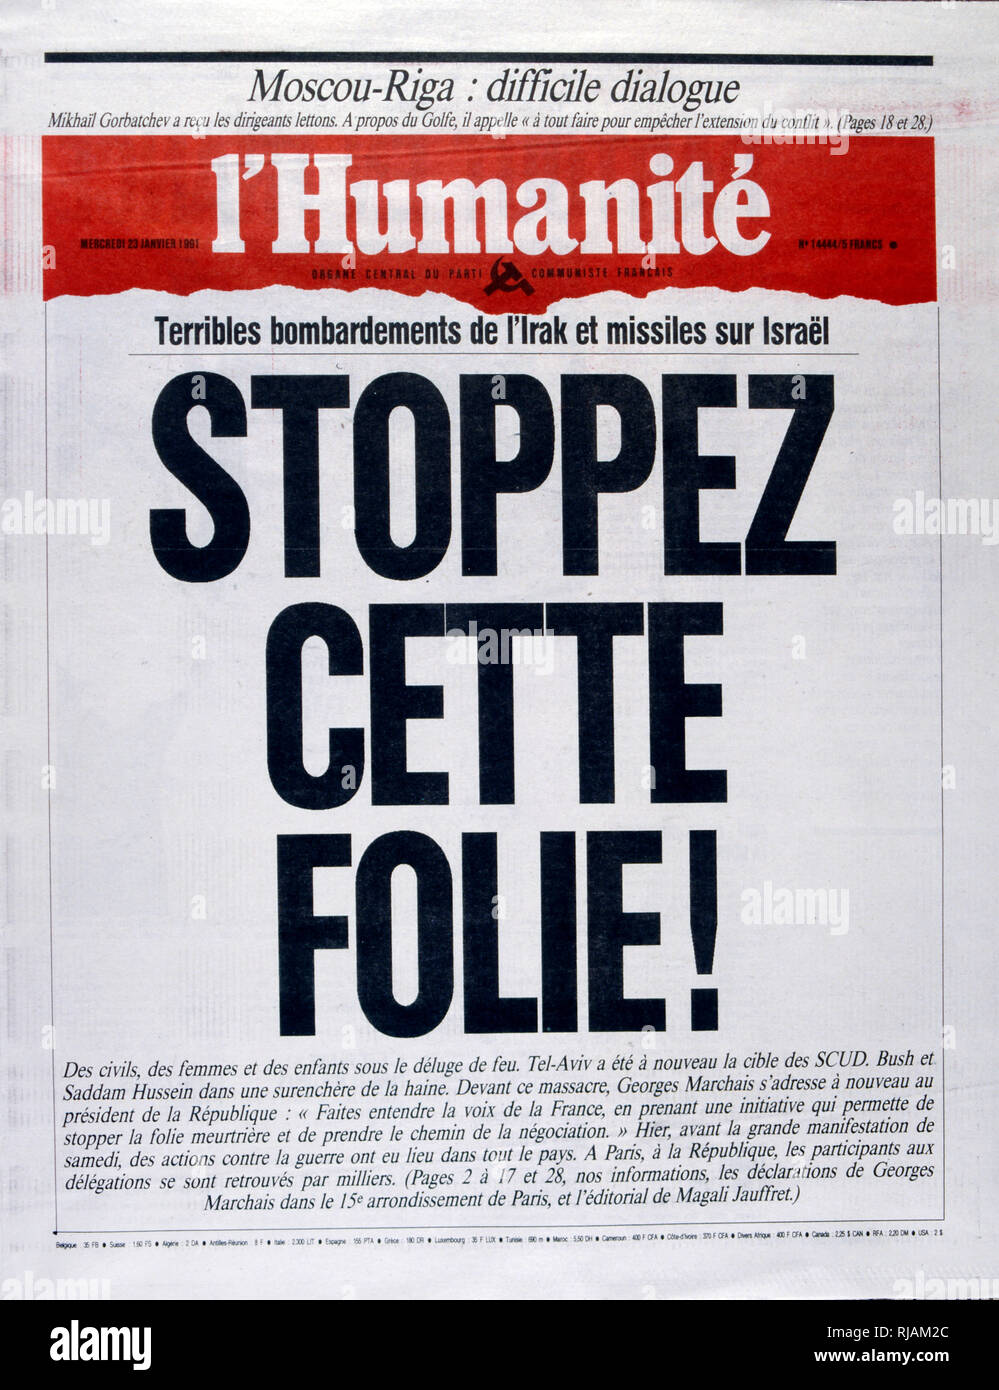 Headline in 'l'Humanite' a French newspaper, 23rd January 1991, concerning a missile attack on Israel during the Gulf War (2 August 1990 - 28 February 1991). codenamed Operation Desert Shield and Operation Desert Storm, the war waged by coalition forces from 35 nations led by the United States against Iraq in response to Iraq's invasion and annexation of Kuwait. the pictures show French filed commanders and the French War cabinet under President Mitterrand. - Stock Image